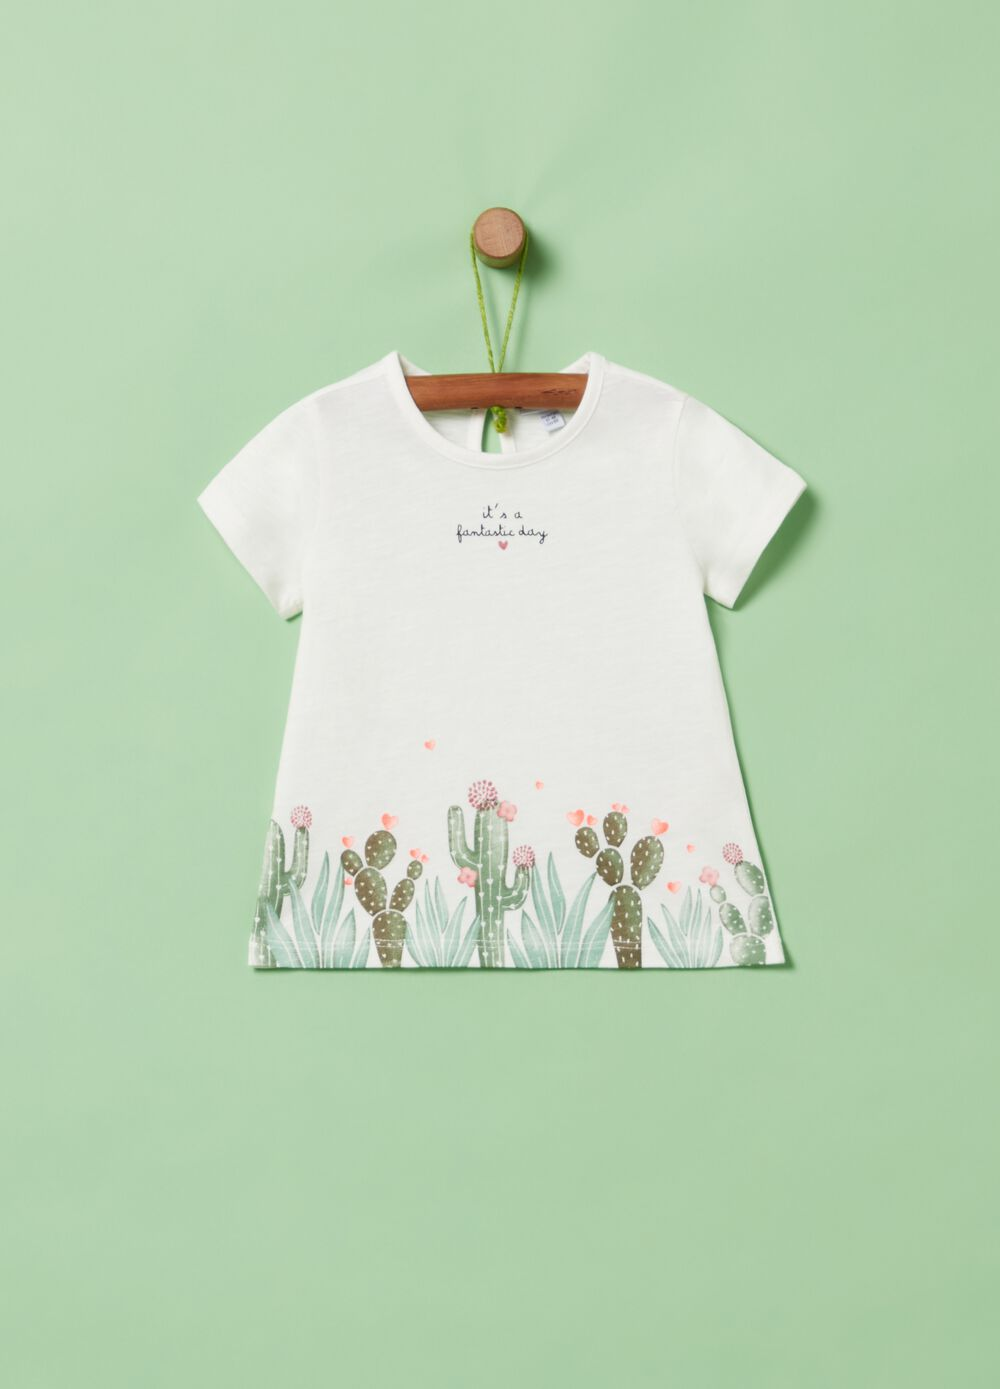 100% organic cotton T-shirt with cactus print